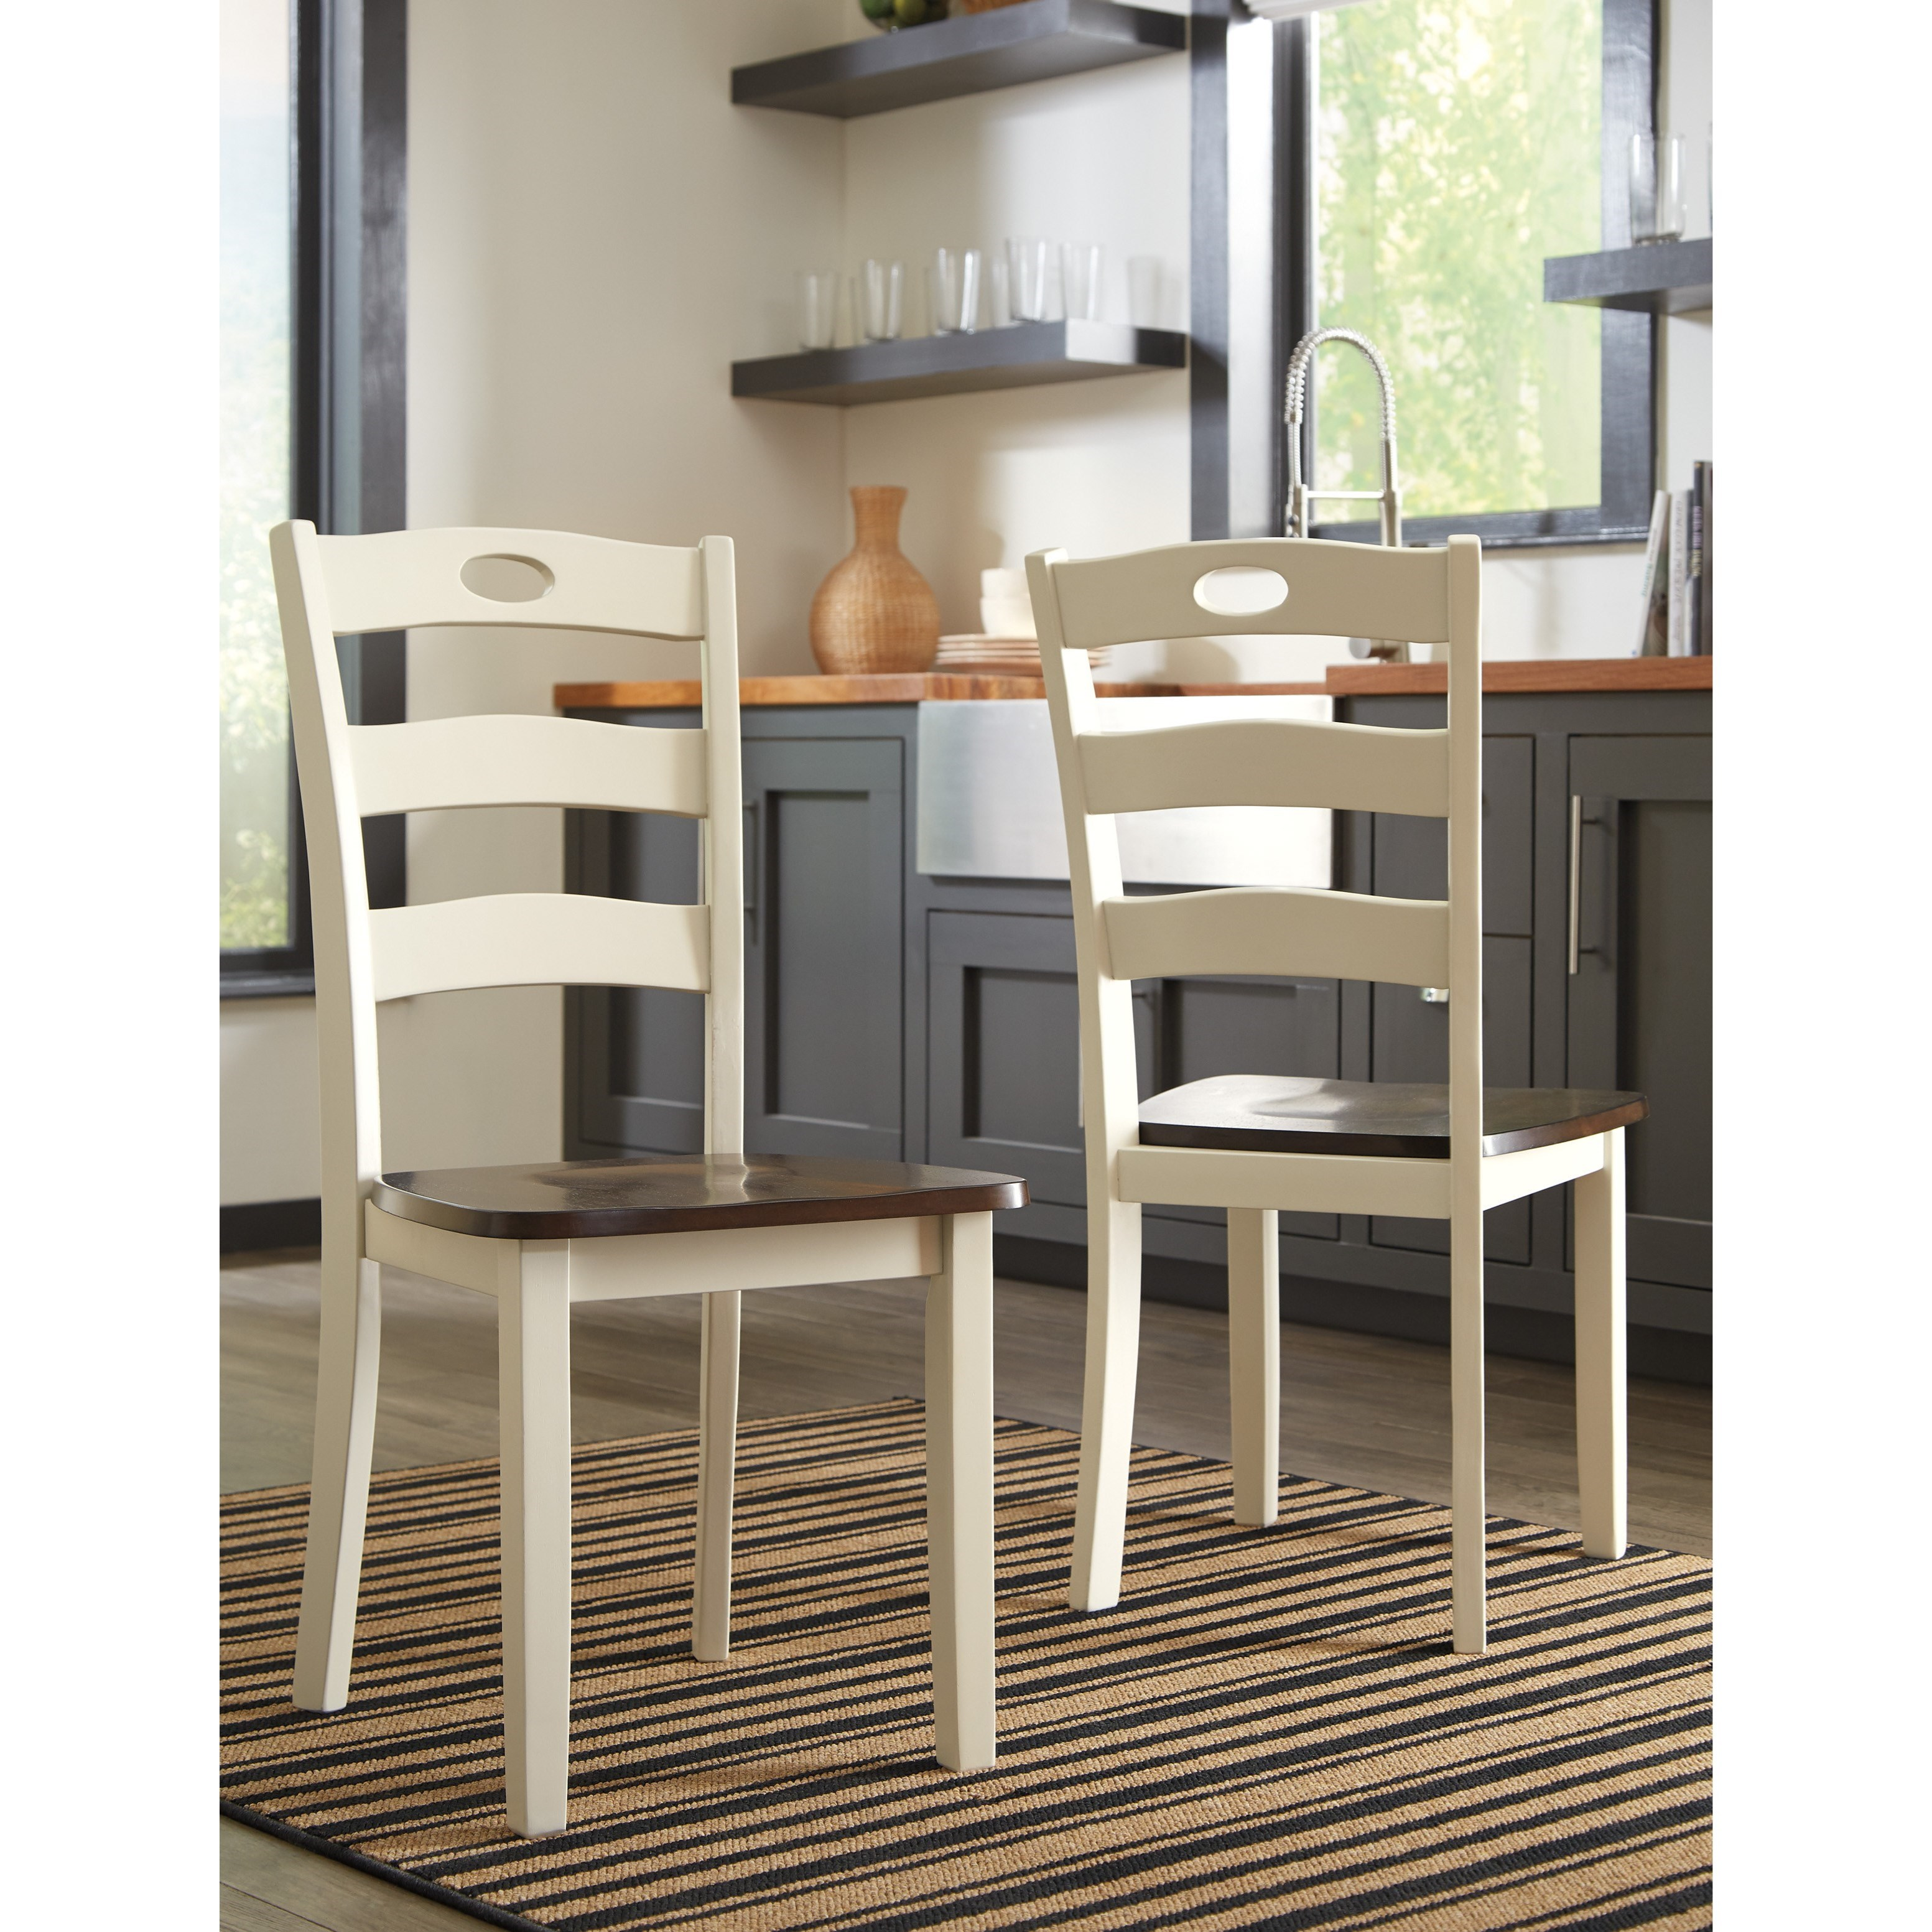 Ashley Furniture Danville Va: Two-Tone Finish 7-Piece Dining Room Table Set By Signature